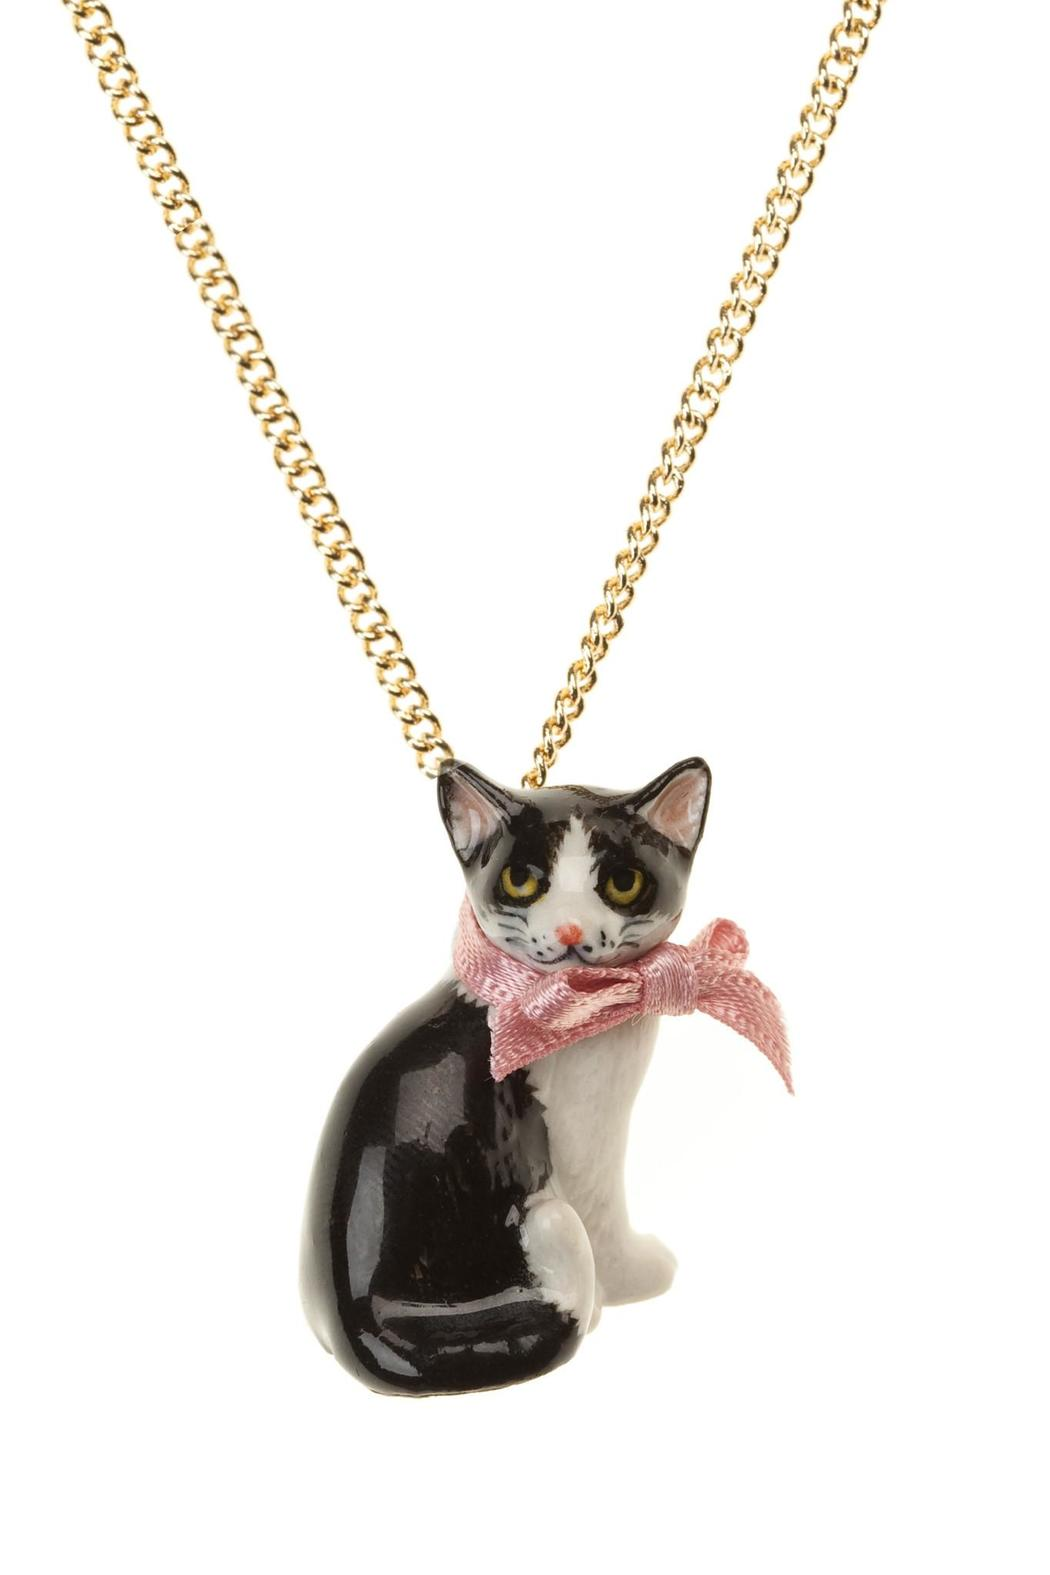 jewelry origami appl necklace pendant animal bling cat silver az in